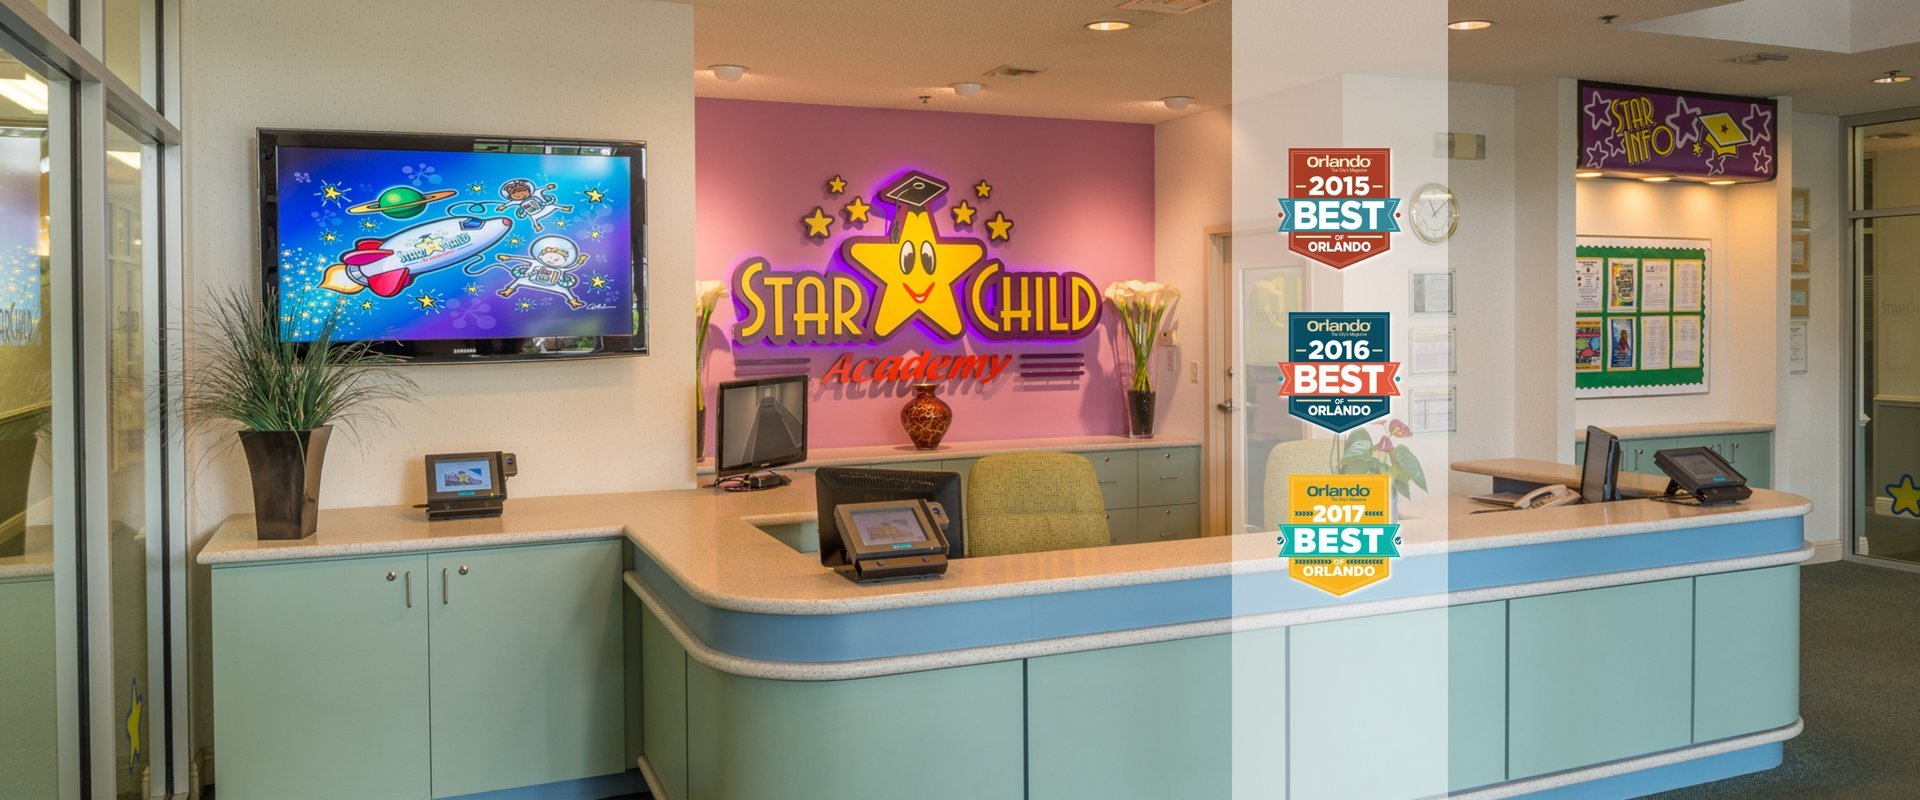 Boy Sitting at Desk in StarChild Academy's Private Elementary School Program